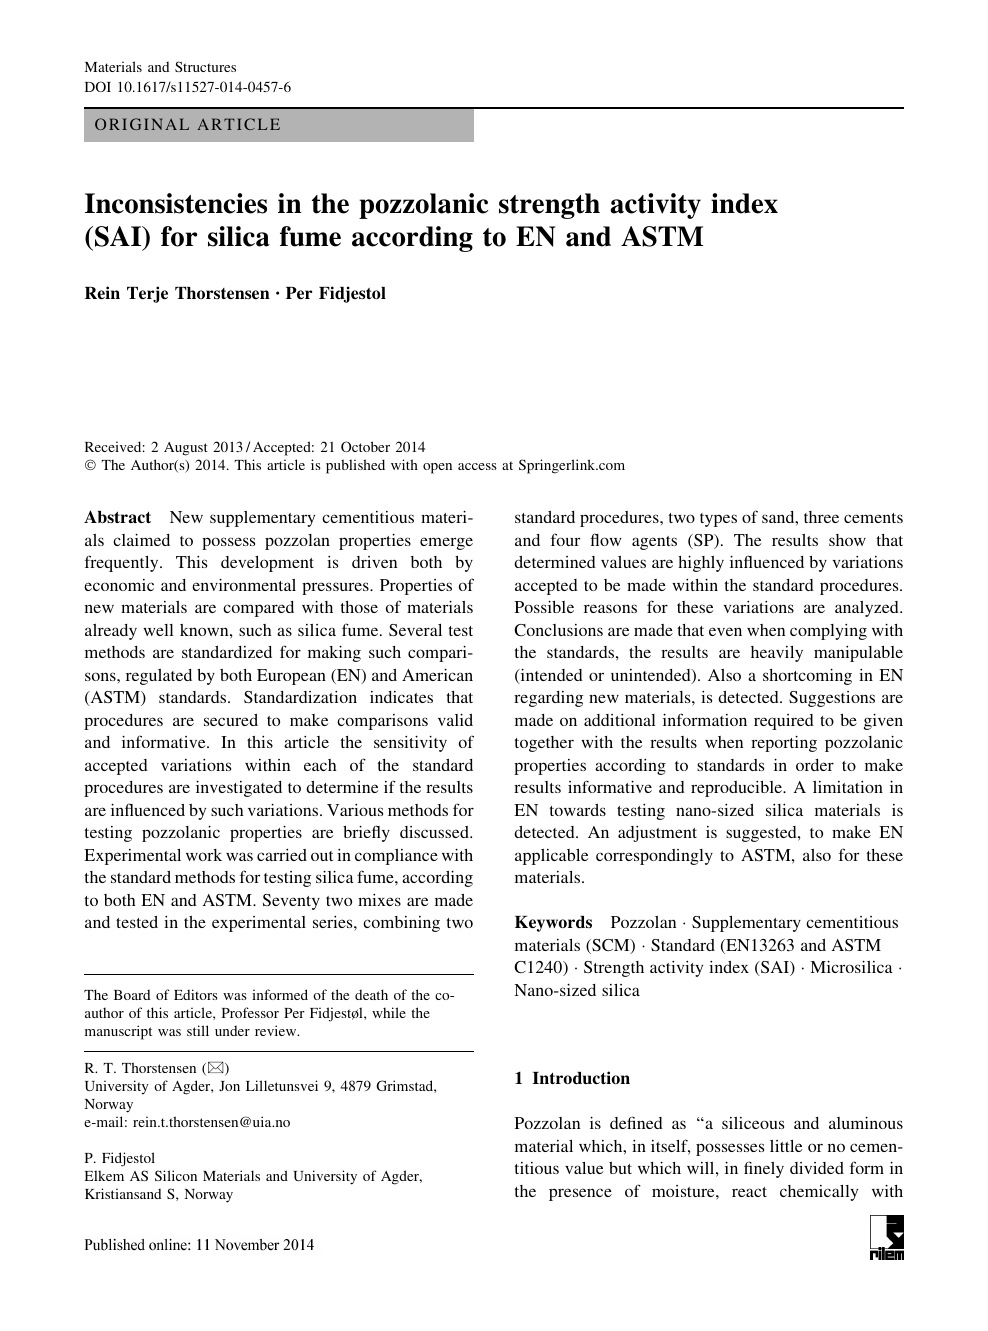 Inconsistencies in the pozzolanic strength activity index